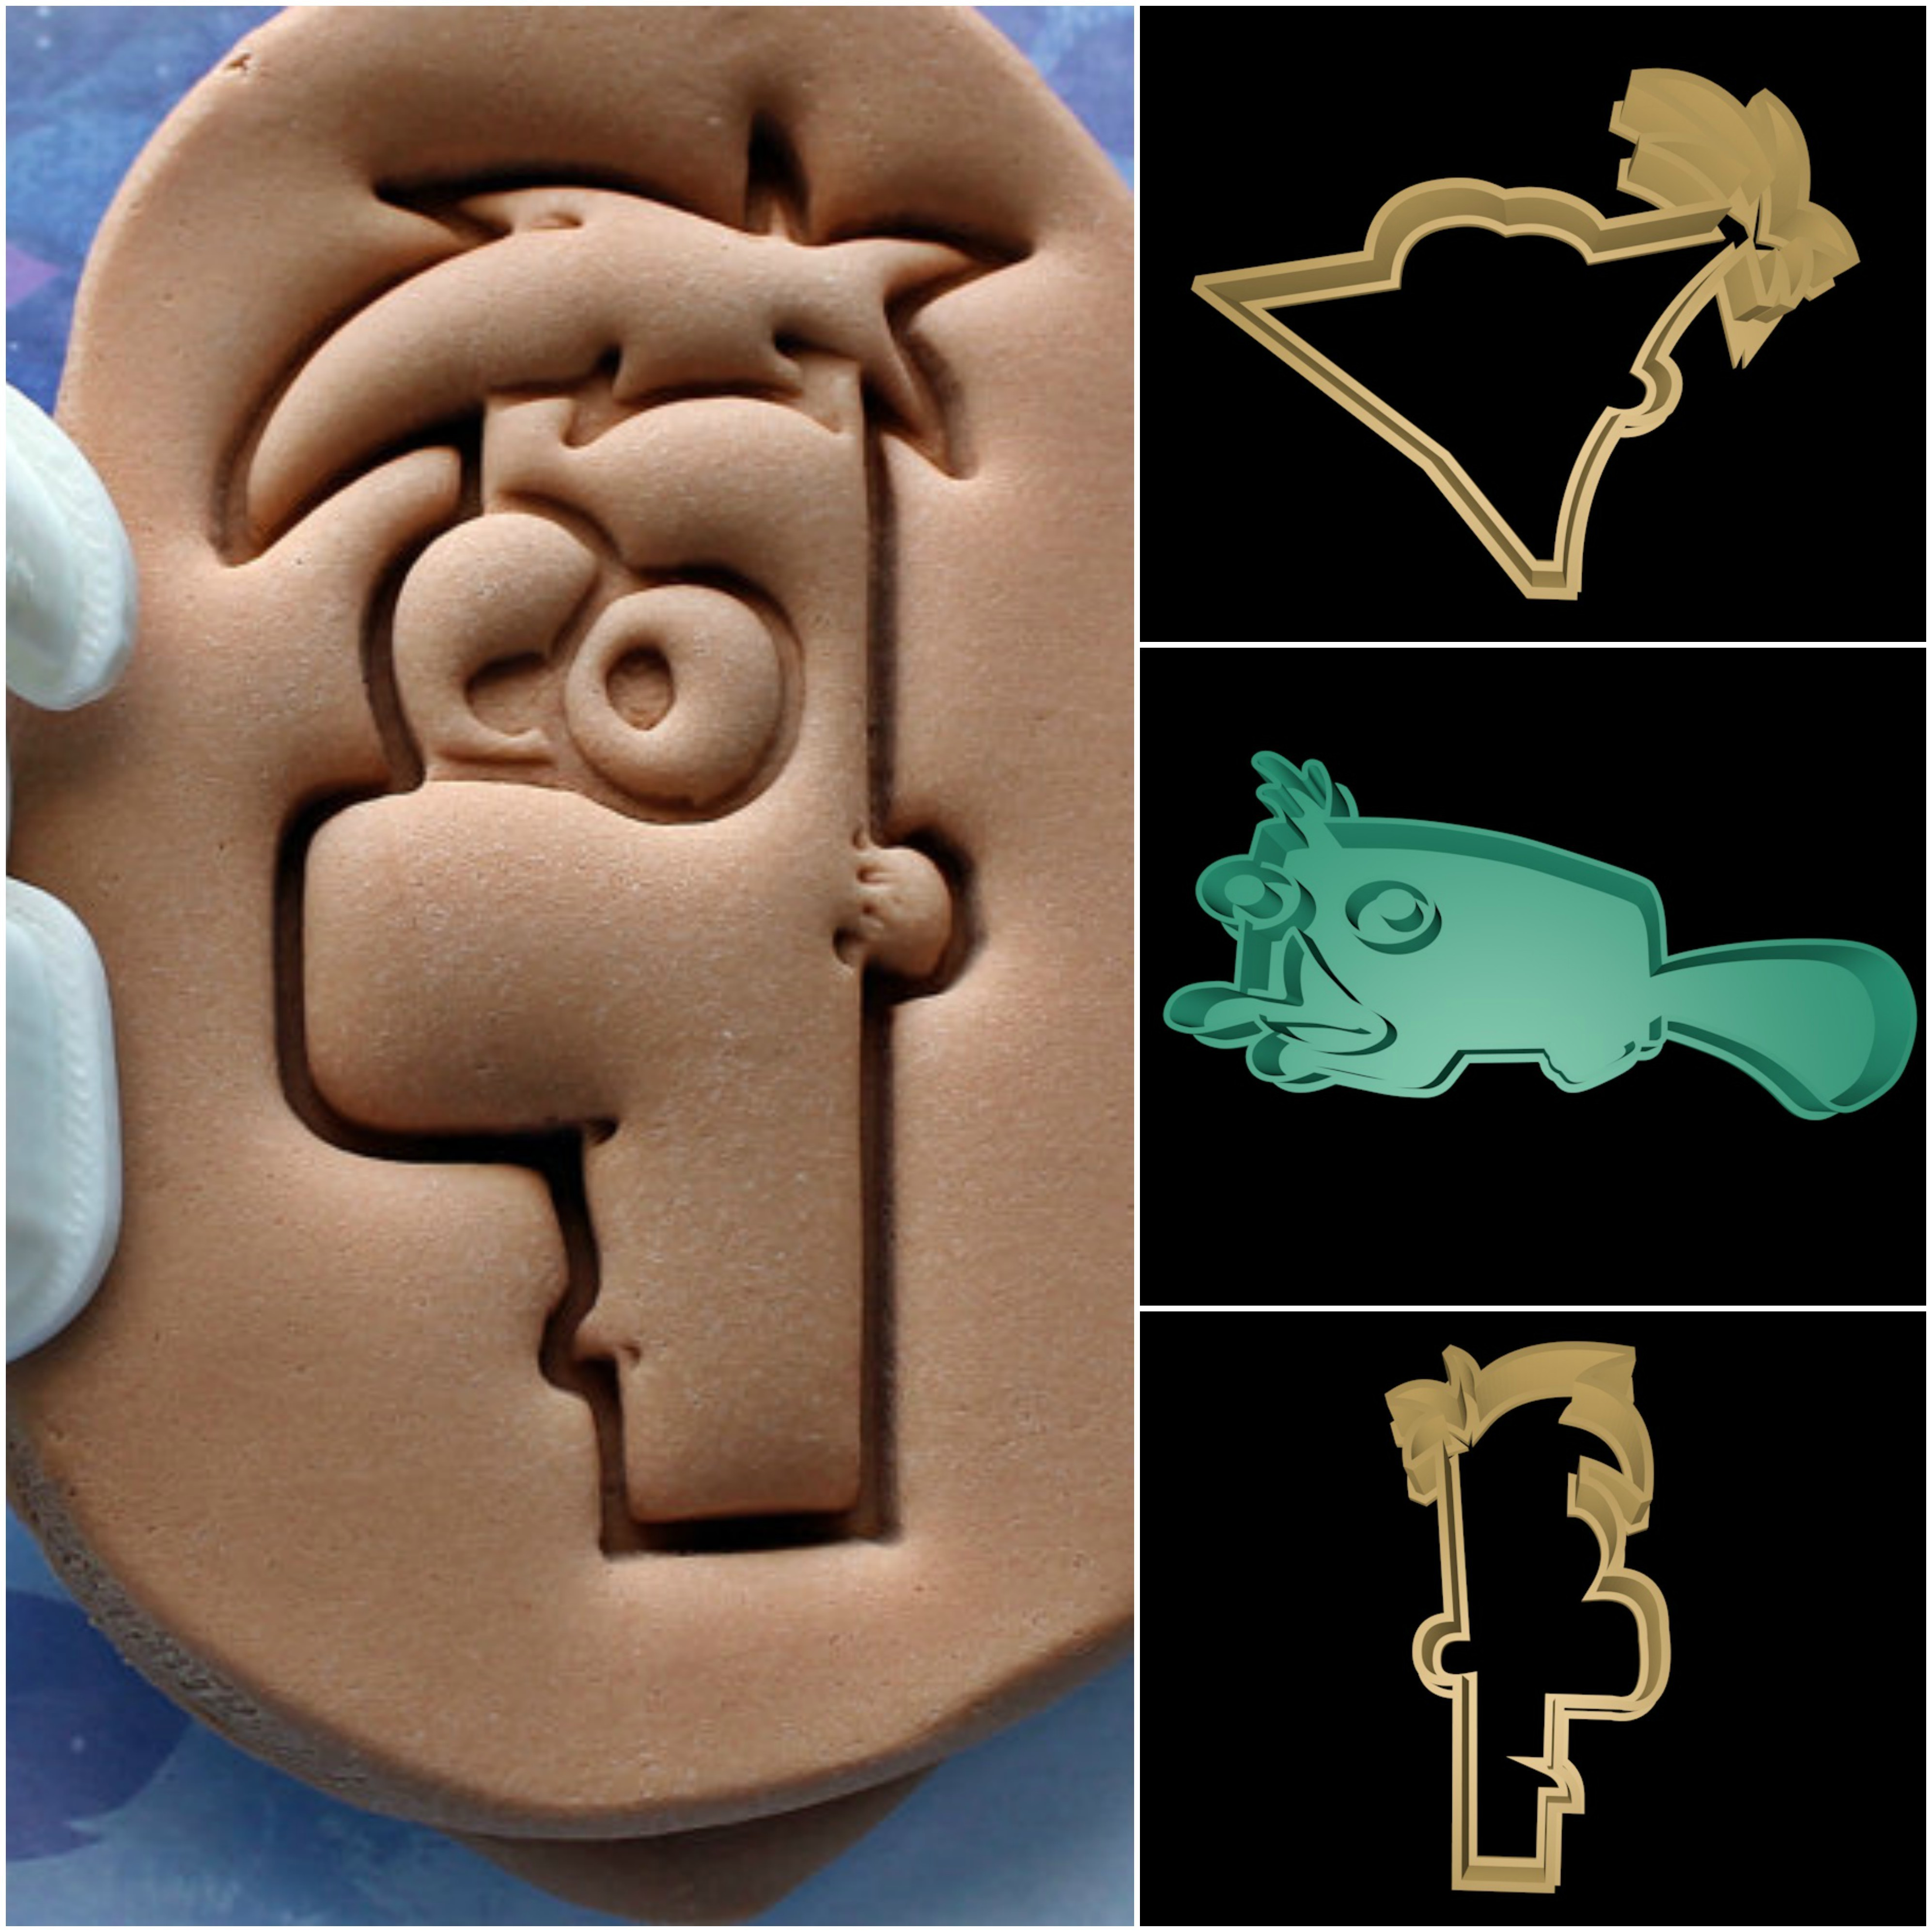 phineas and ferb.jpg Download STL file Phineas and Ferb cookie cutter set • 3D printer template, davidruizo